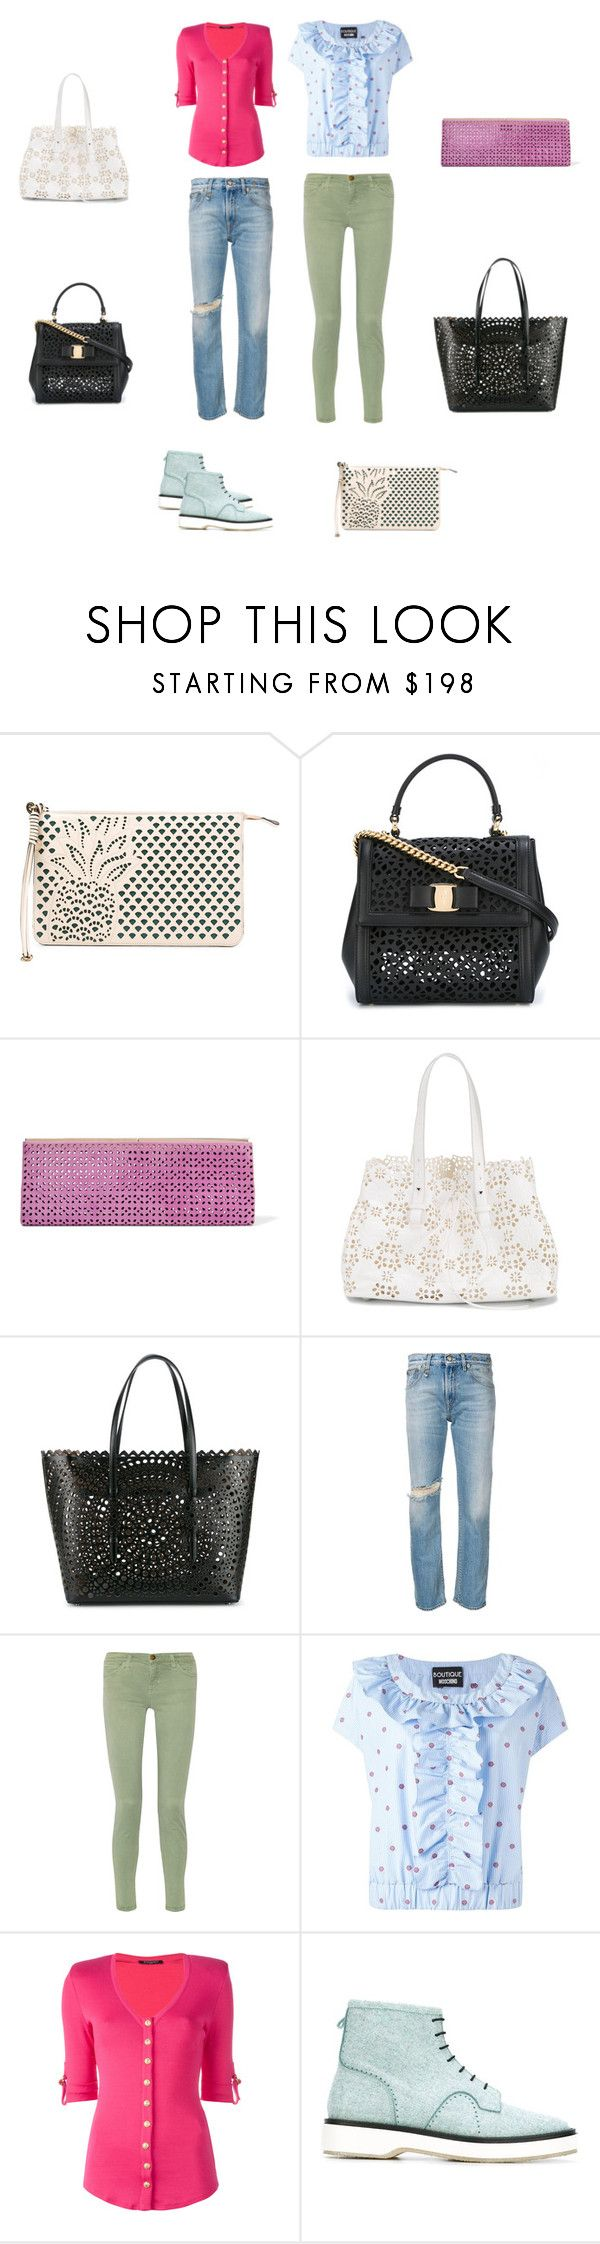 """Cut-out Bags..**"" by yagna ❤ liked on Polyvore featuring Chloé, Salvatore Ferragamo, Jimmy Choo, Simone Rocha, Alaïa, R13, Current/Elliott, Boutique Moschino, Balmain and Adieu"